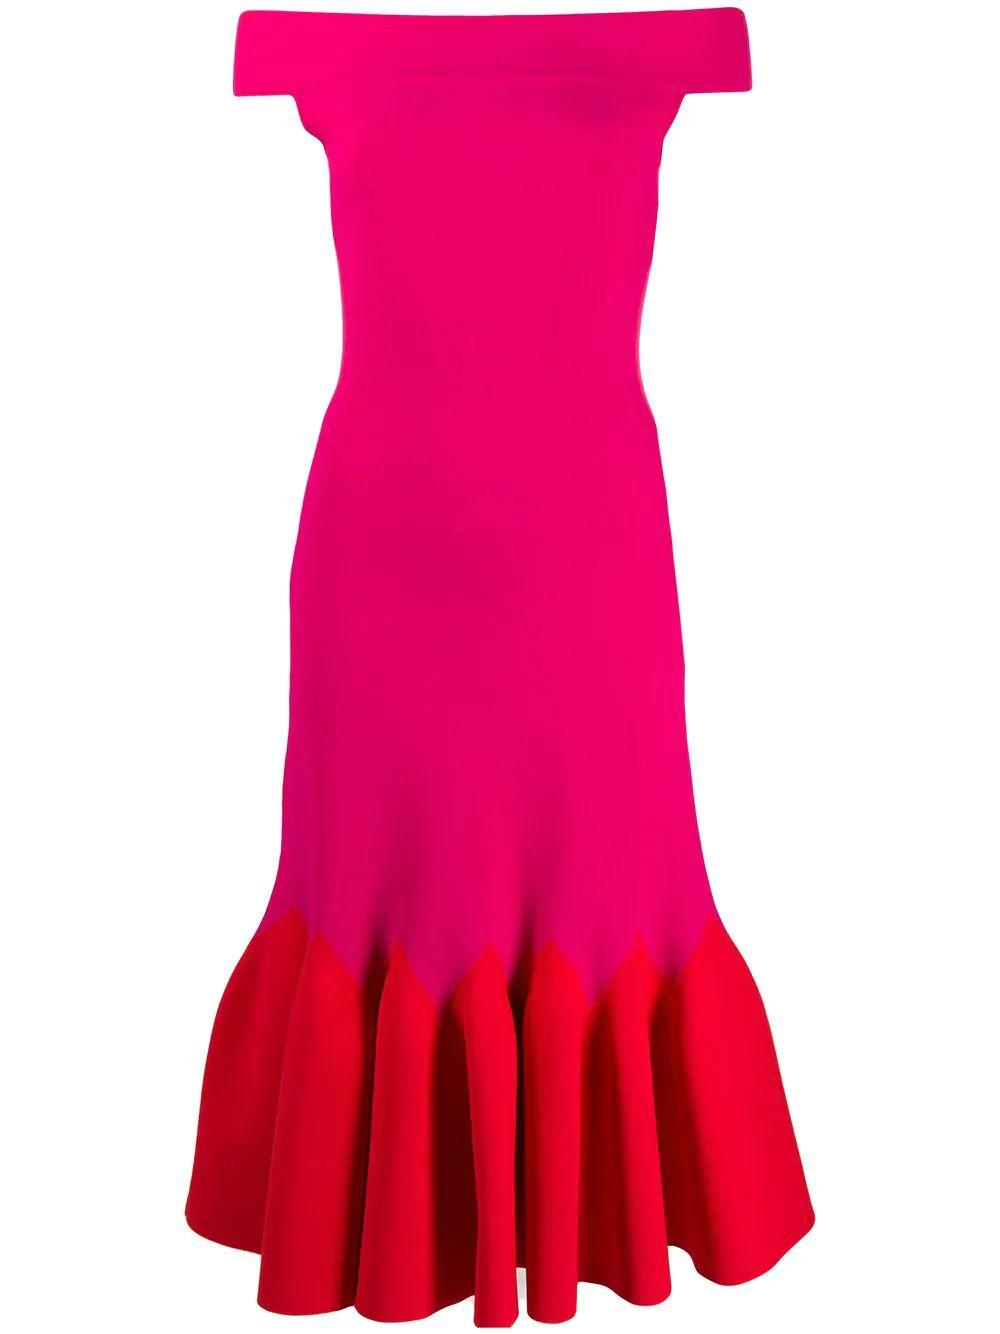 Off The Shoulder Bi-Color Sculptural Dress